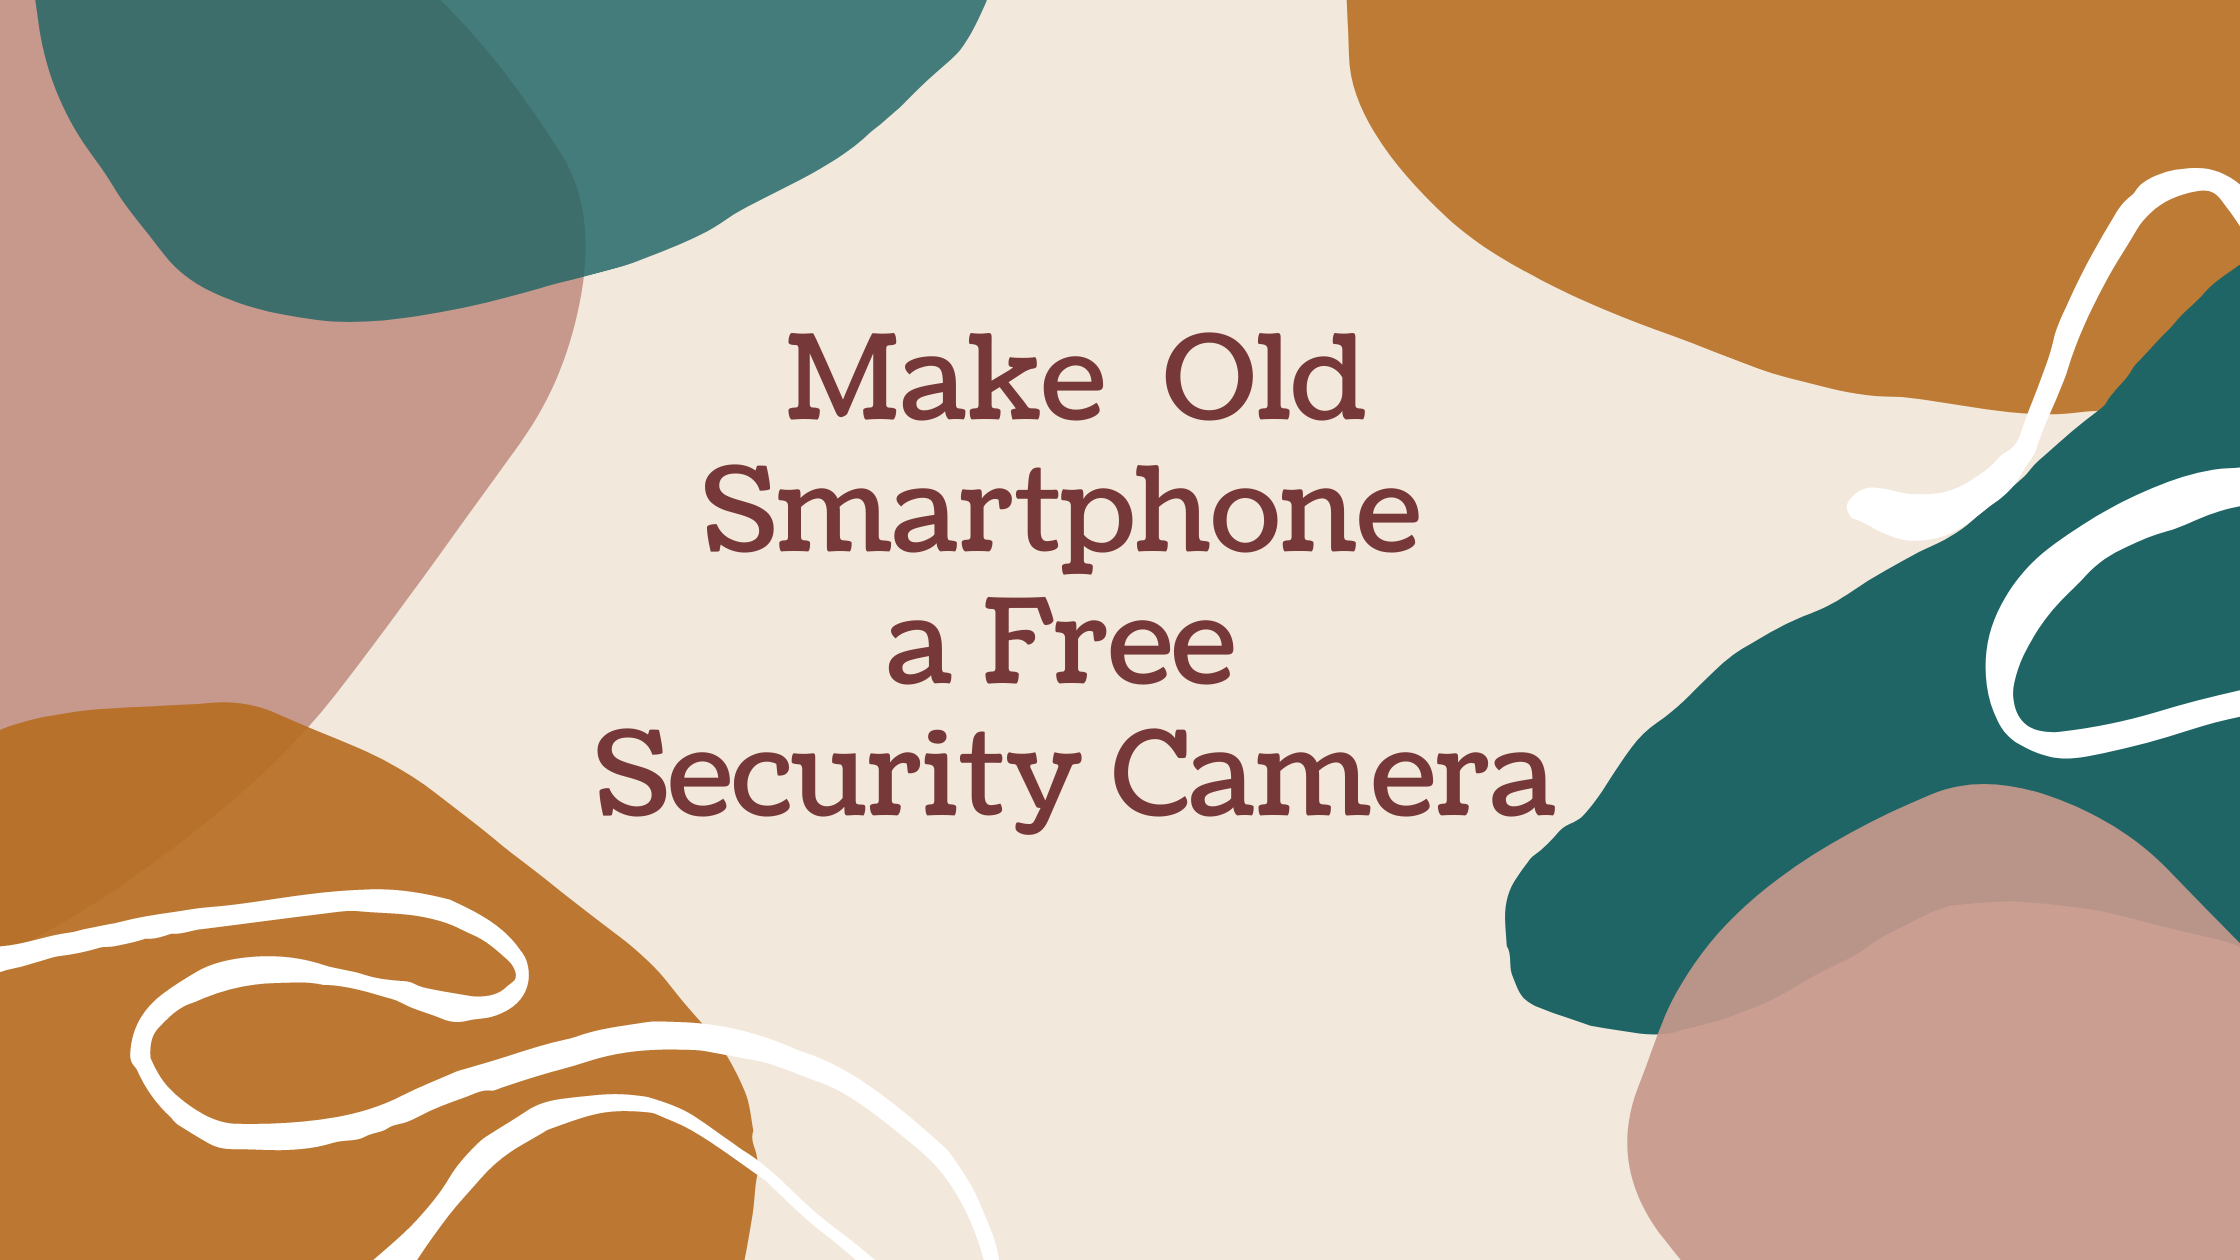 How to Make an Old Smartphone as a Free Security Camera